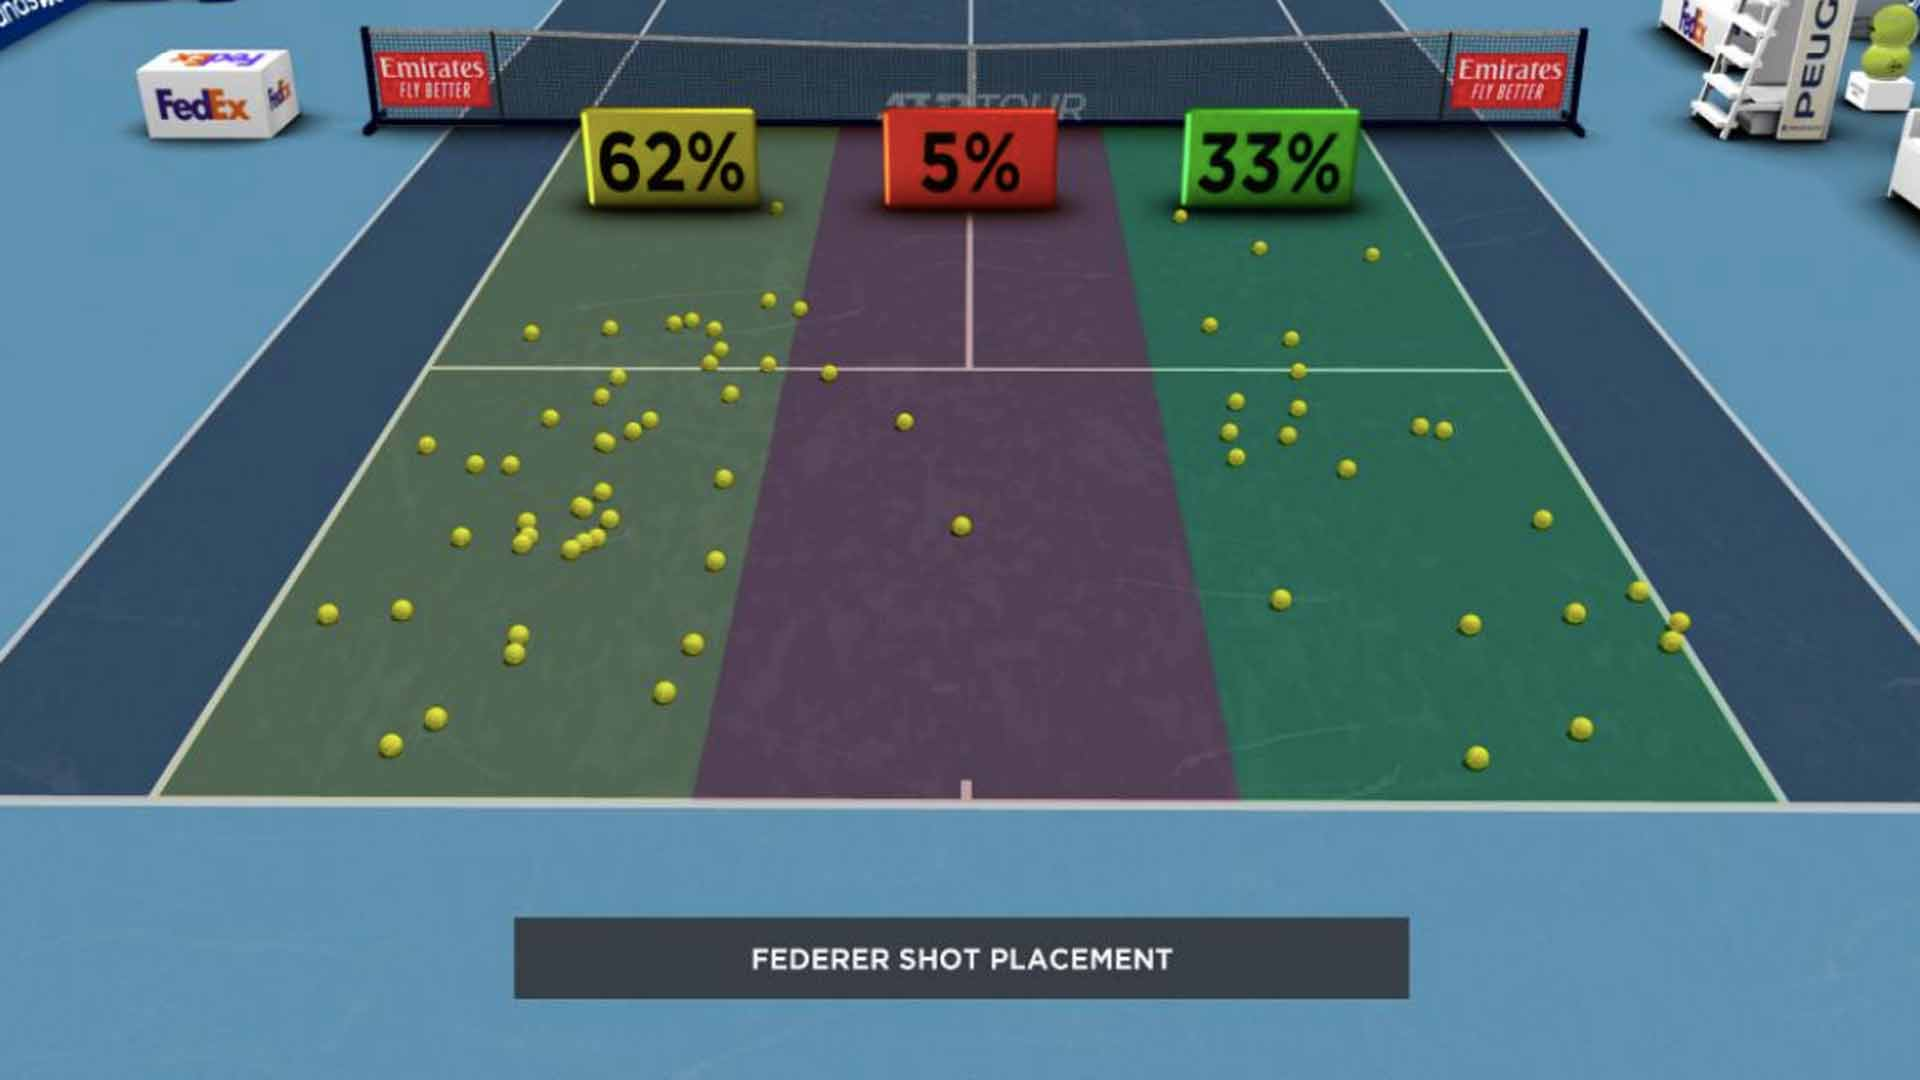 Federer Shot Placement